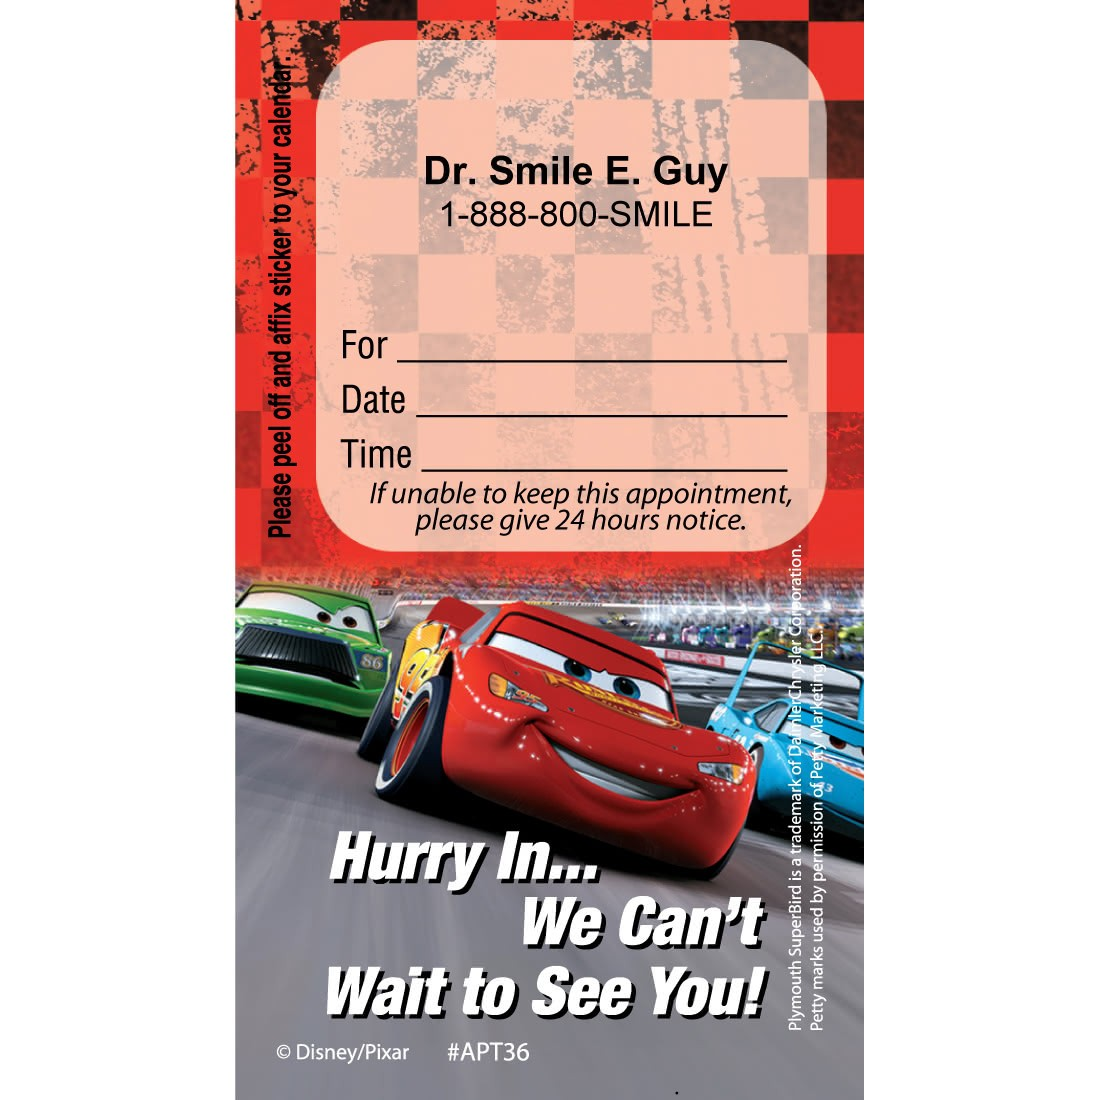 Custom Disney Cars Dental Team Appointment Cards [image]